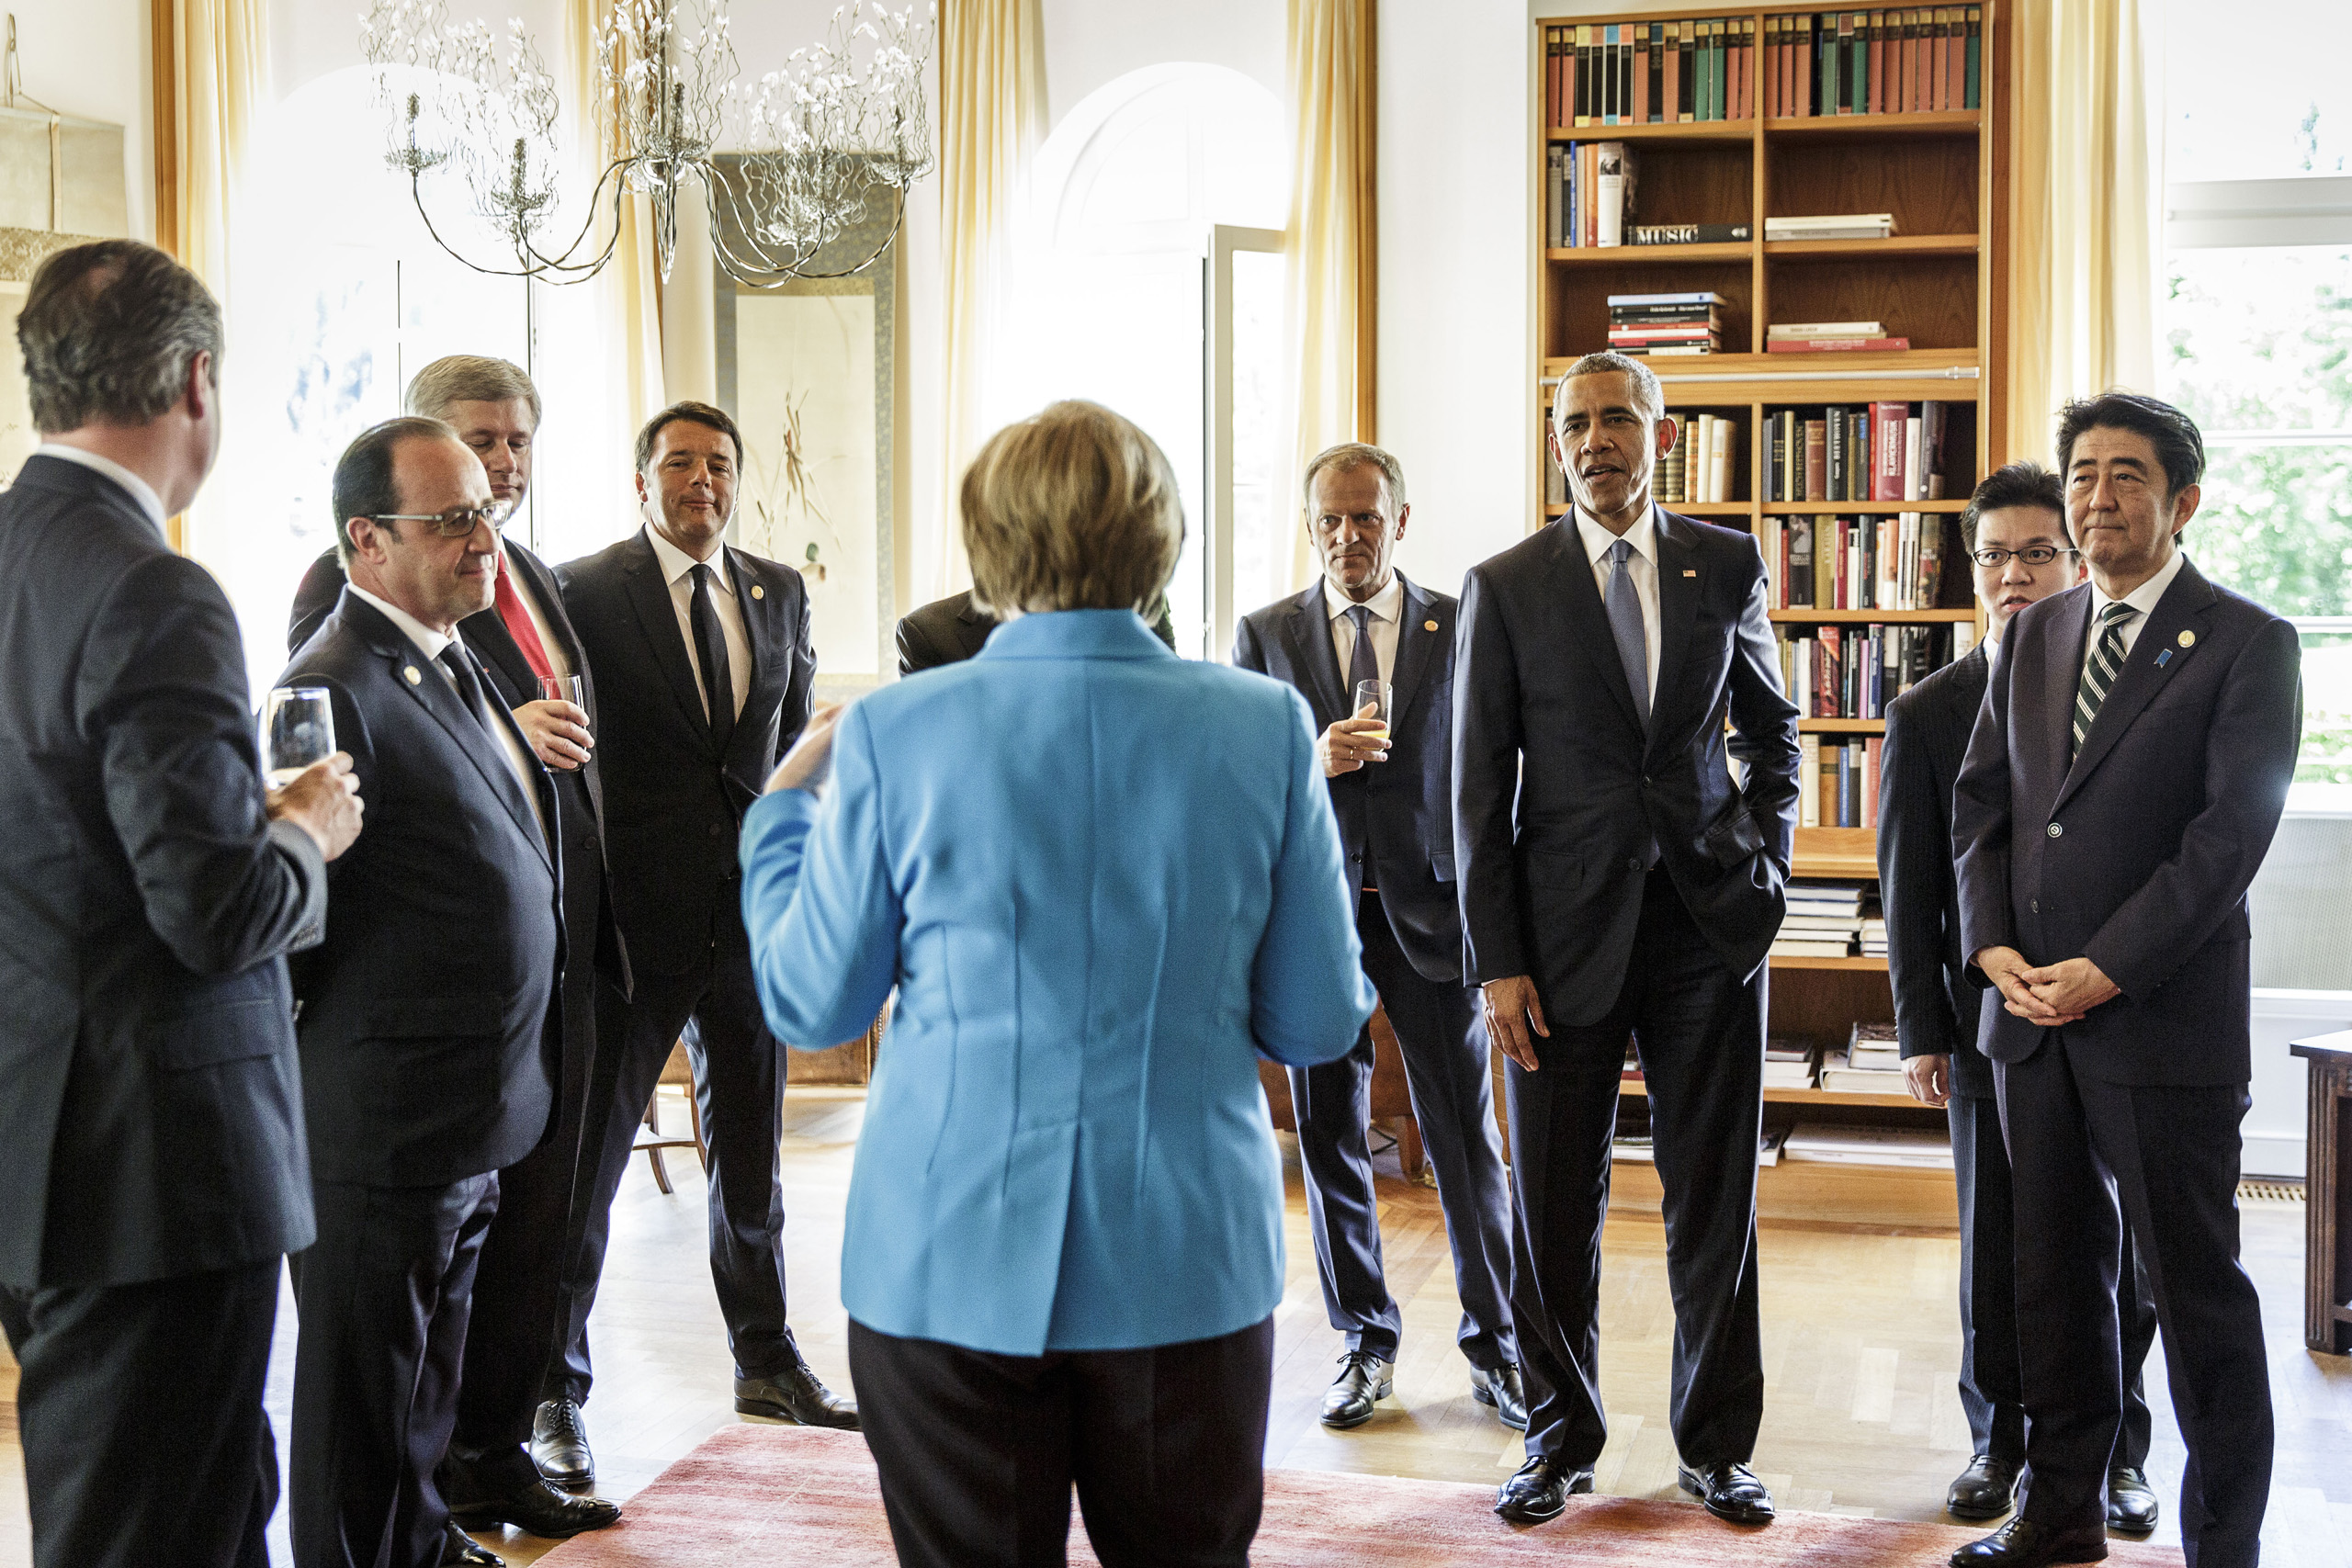 Chancellor Merkel welcomes G7 heads of states shortly before the summit's official start. June 7, 2015.